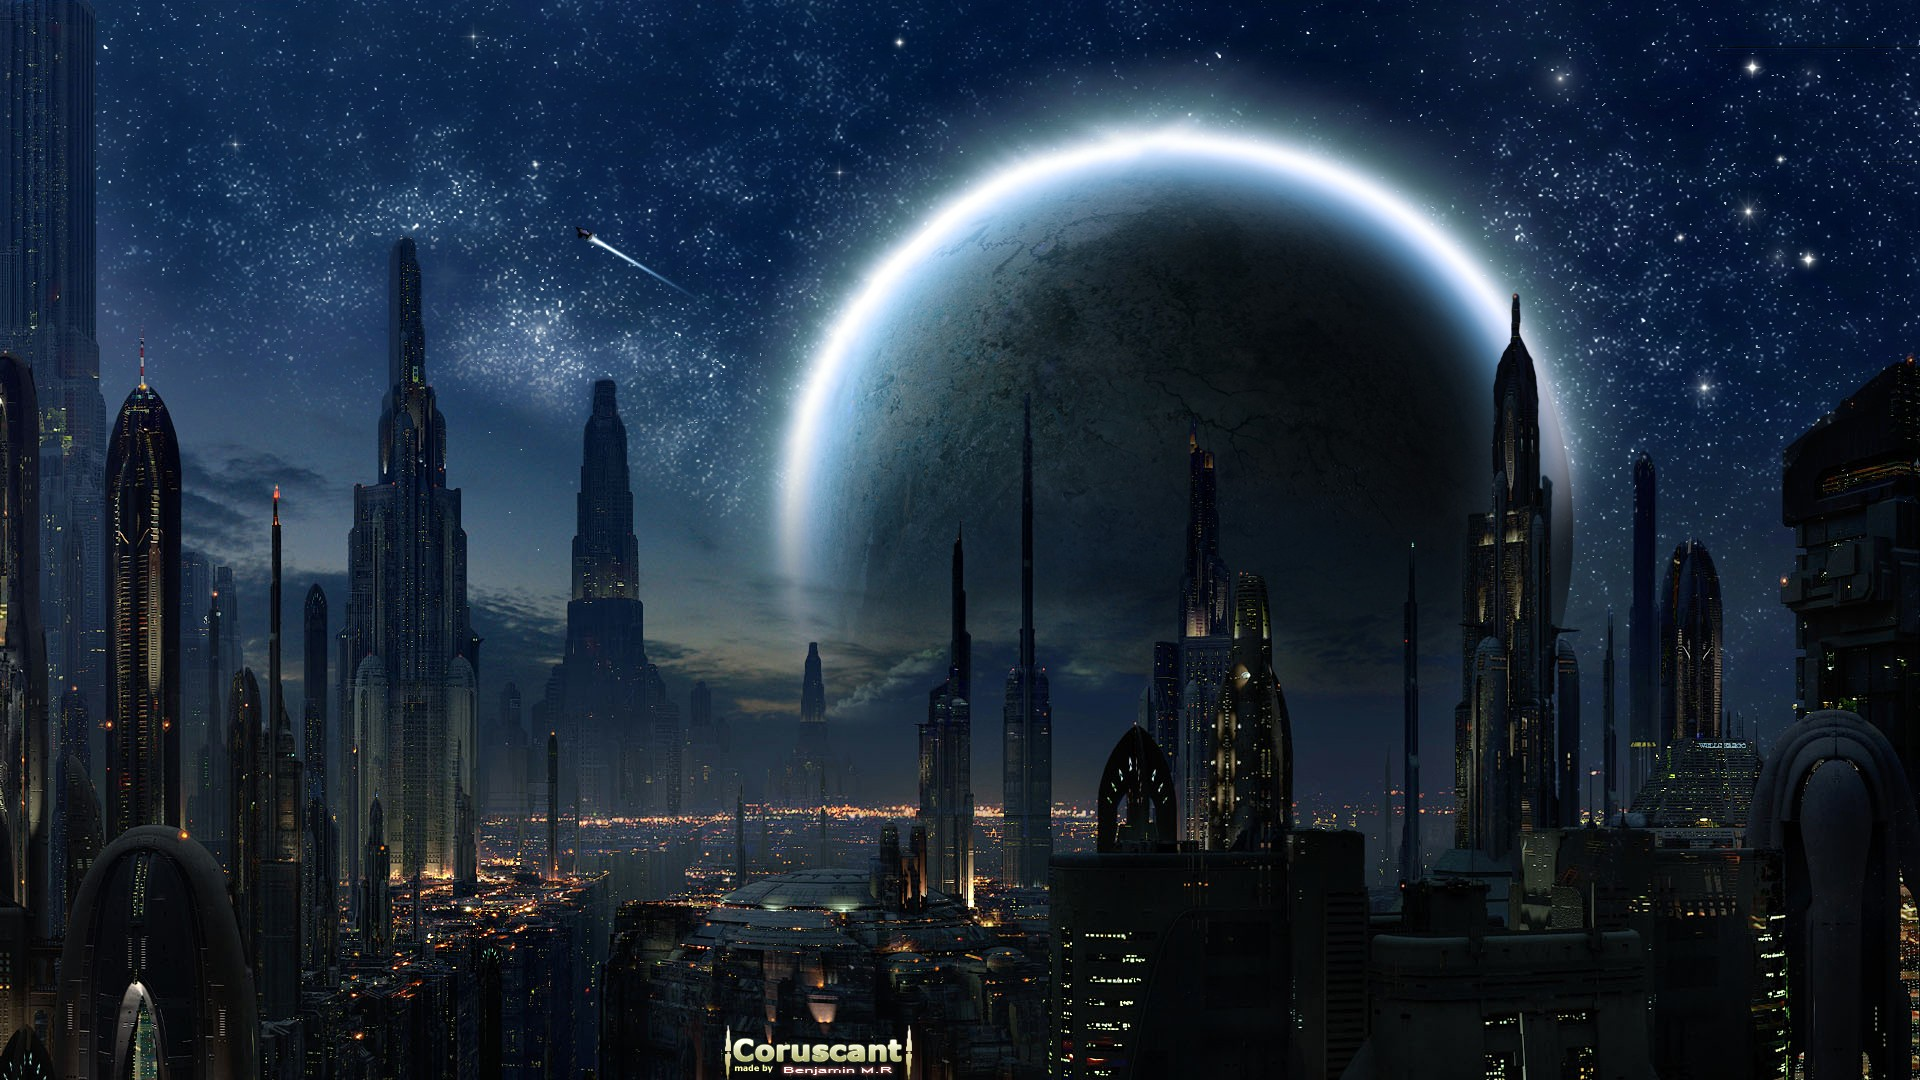 Star Wars Wallpaper 1920x1080 Star Wars Cityscapes Futuristic 1920x1080